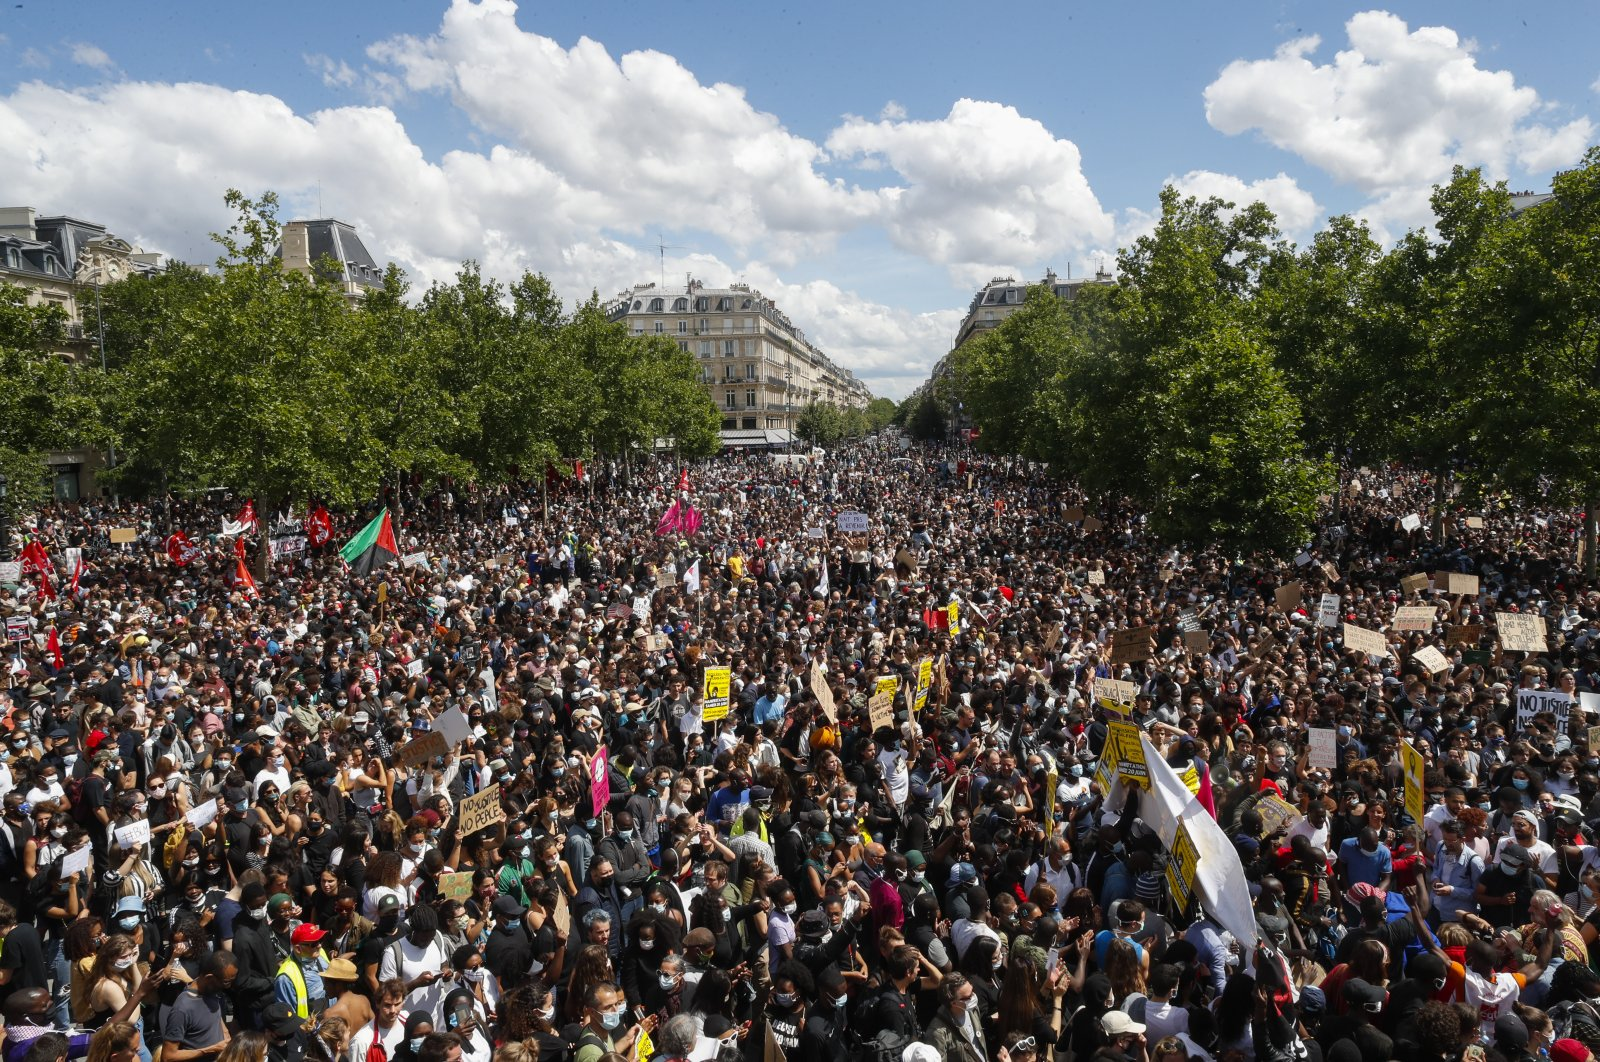 Thousands of people demonstrate against police brutality and racism in Paris, France, Saturday, June 13, 2020, prior to a march organized by supporters of Adama Traore, who died in police custody in 2016 in circumstances that remain unclear despite four years of back-and-forth autopsies. (AP Photo)